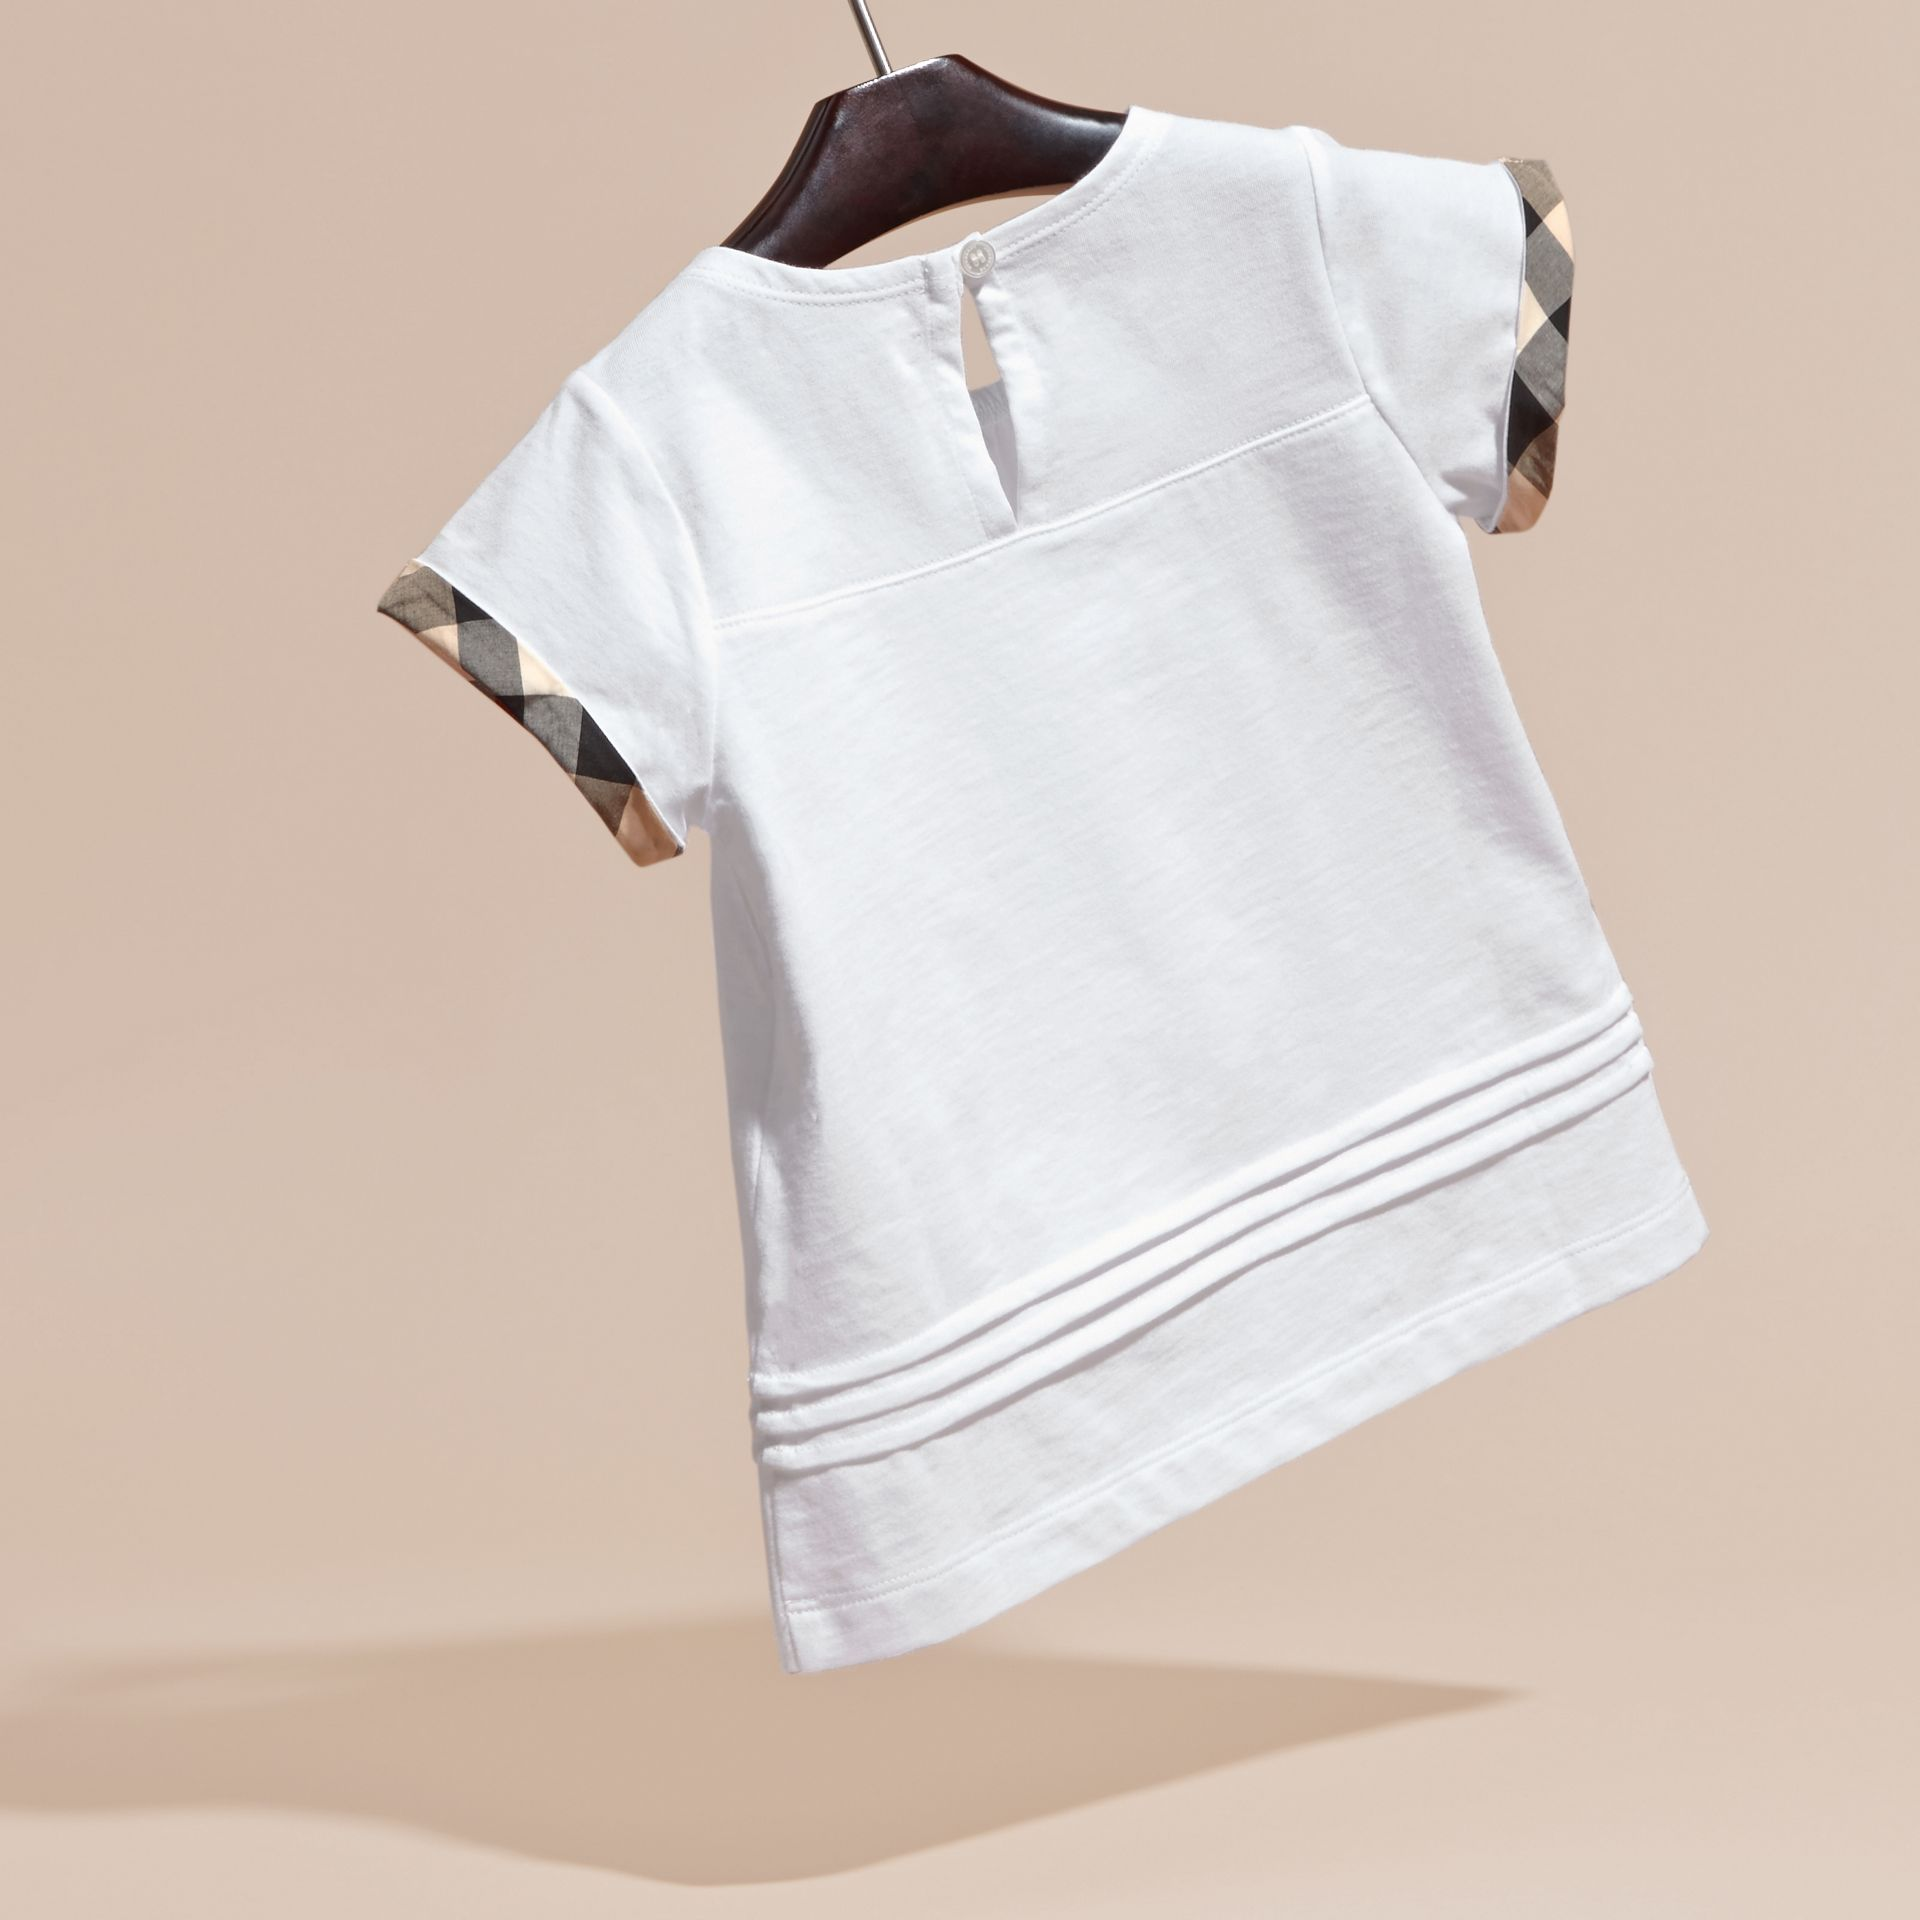 Pleat and Check Detail Cotton T-shirt in White - Girl | Burberry - gallery image 4